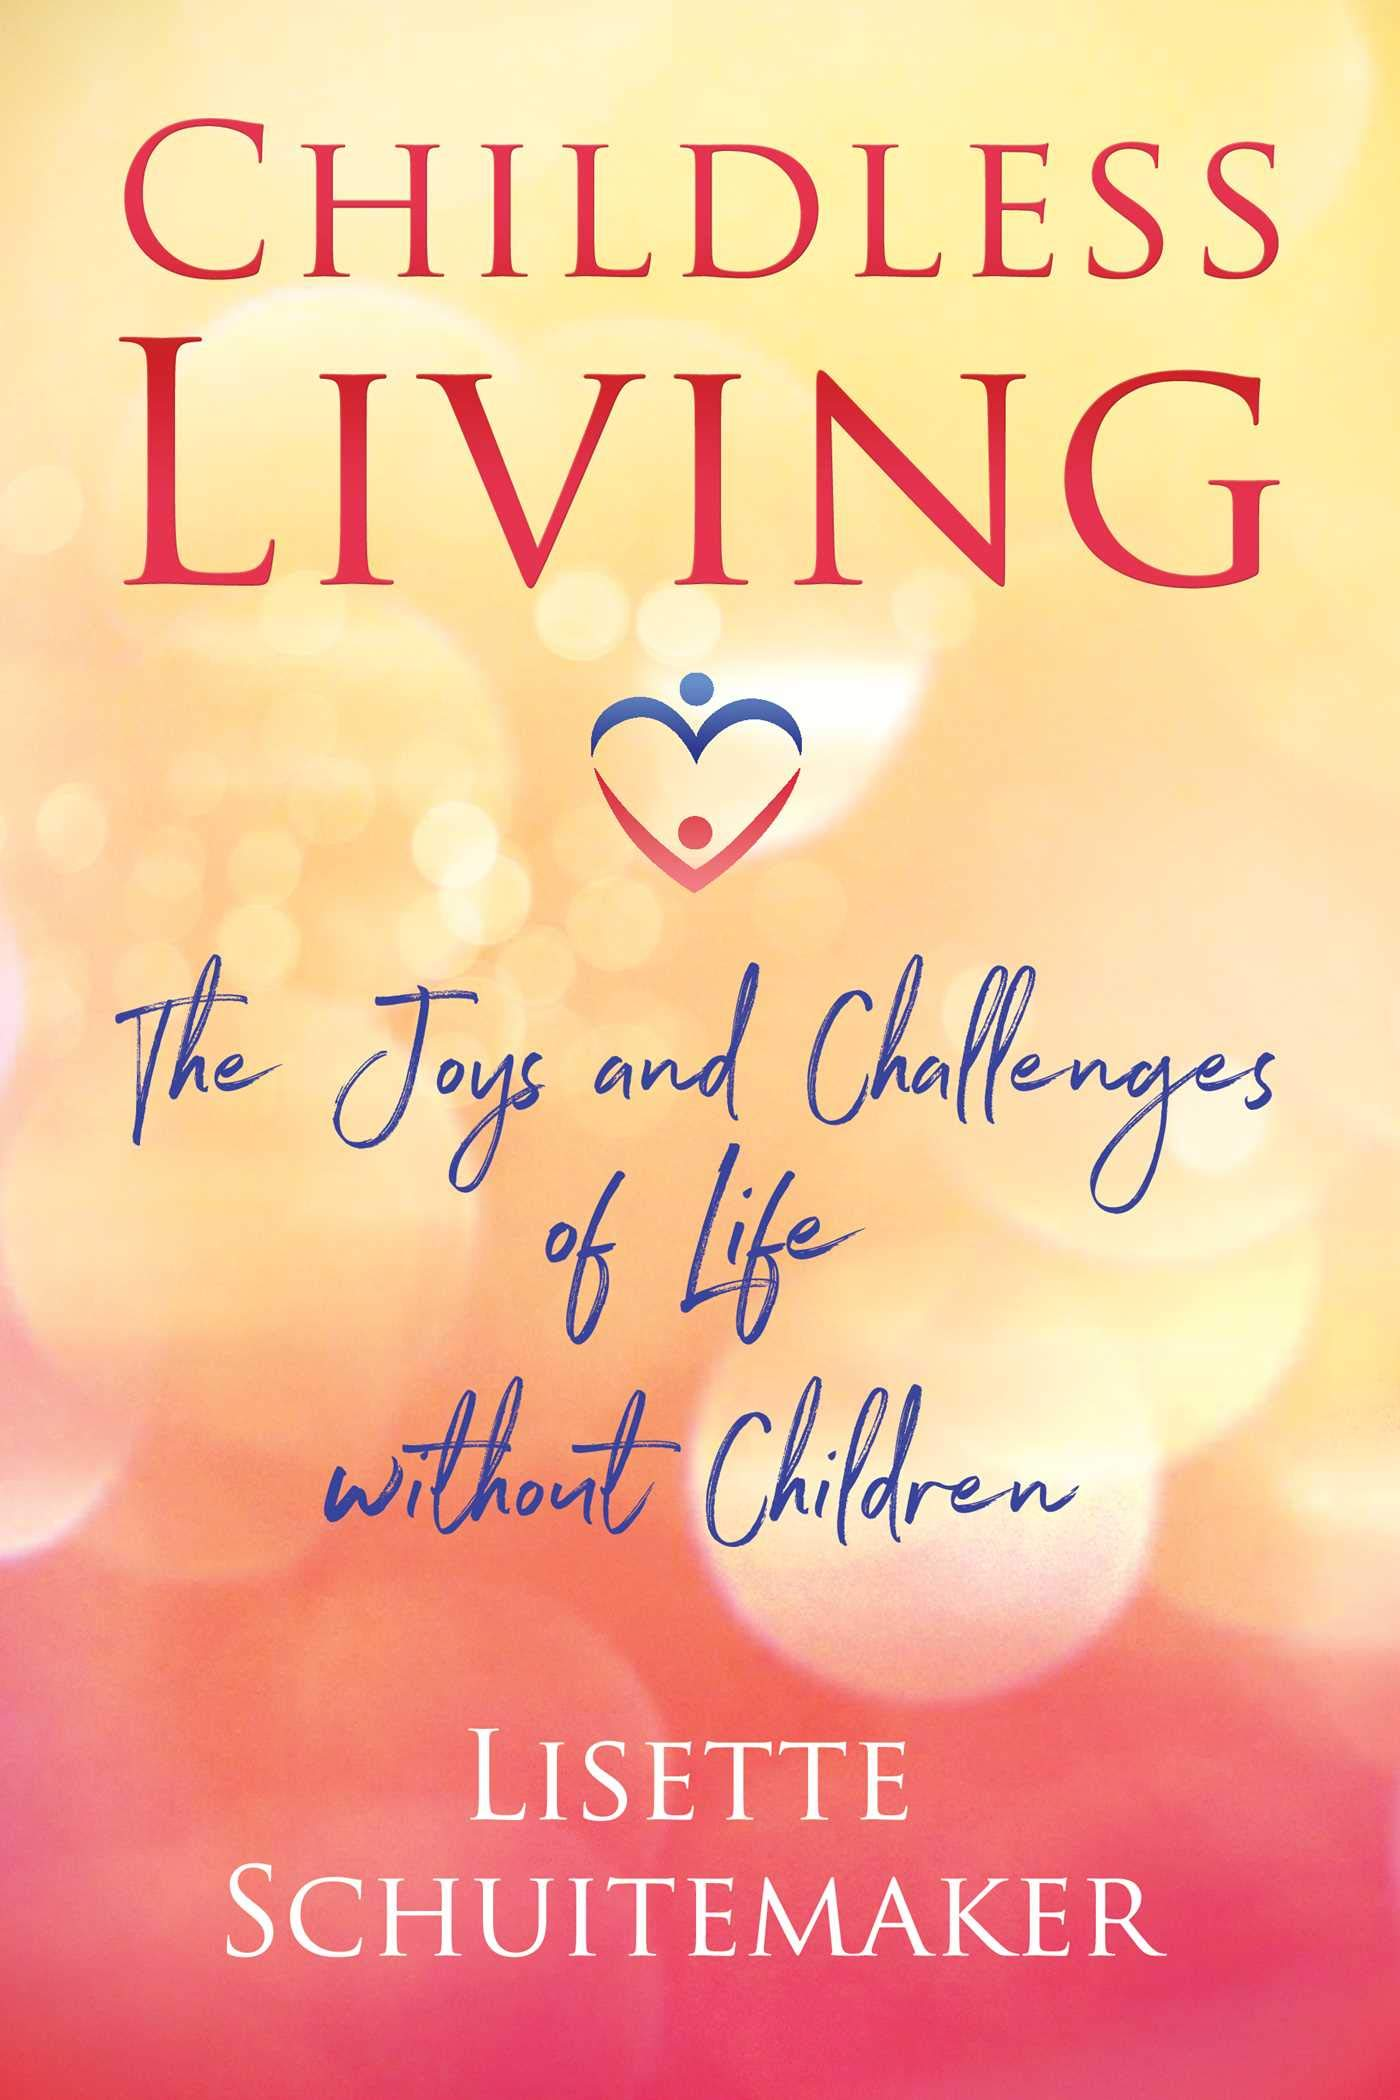 Childless Living: The Joys and Challenges of Life without